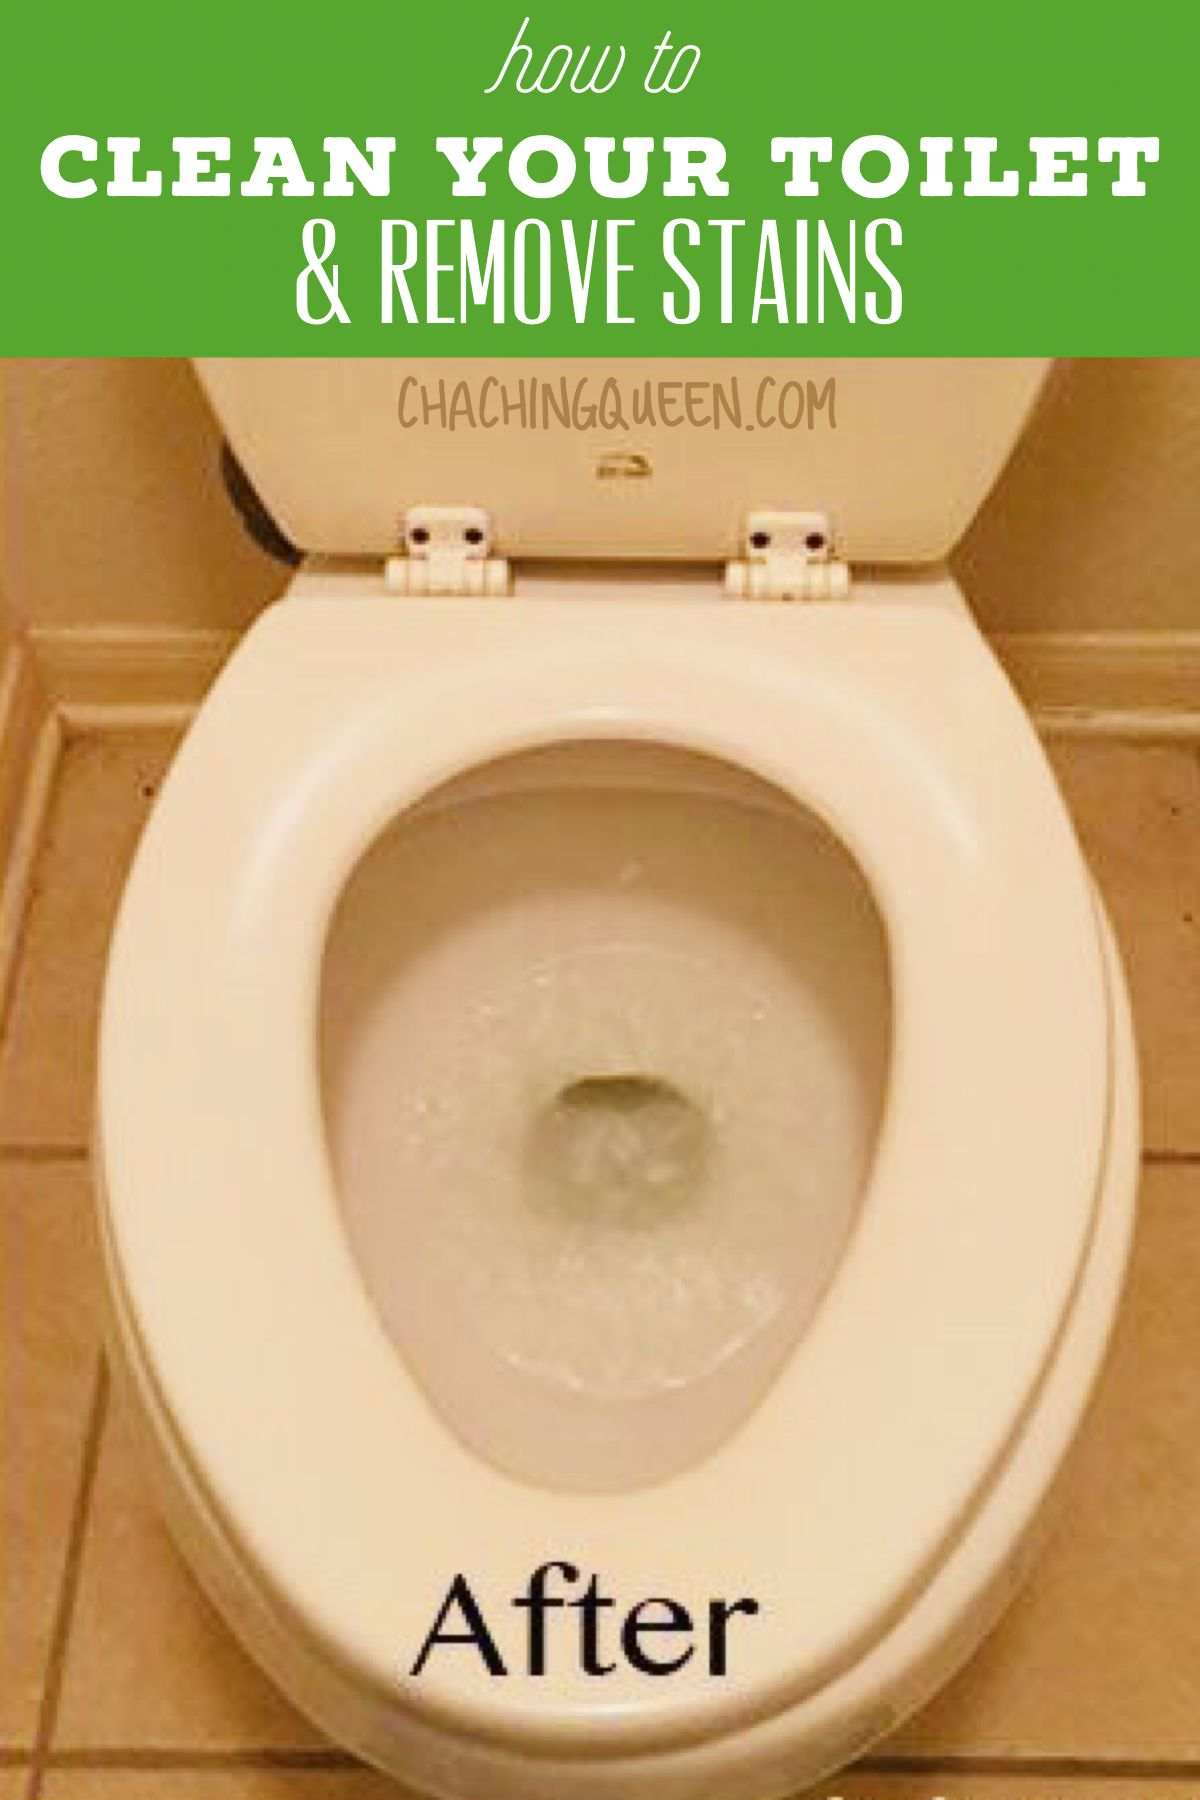 How To Clean A Toilet And How To Remove Hard Water Stains Toilet Cleaning Hard Water Stain Remover House Cleaning Tips